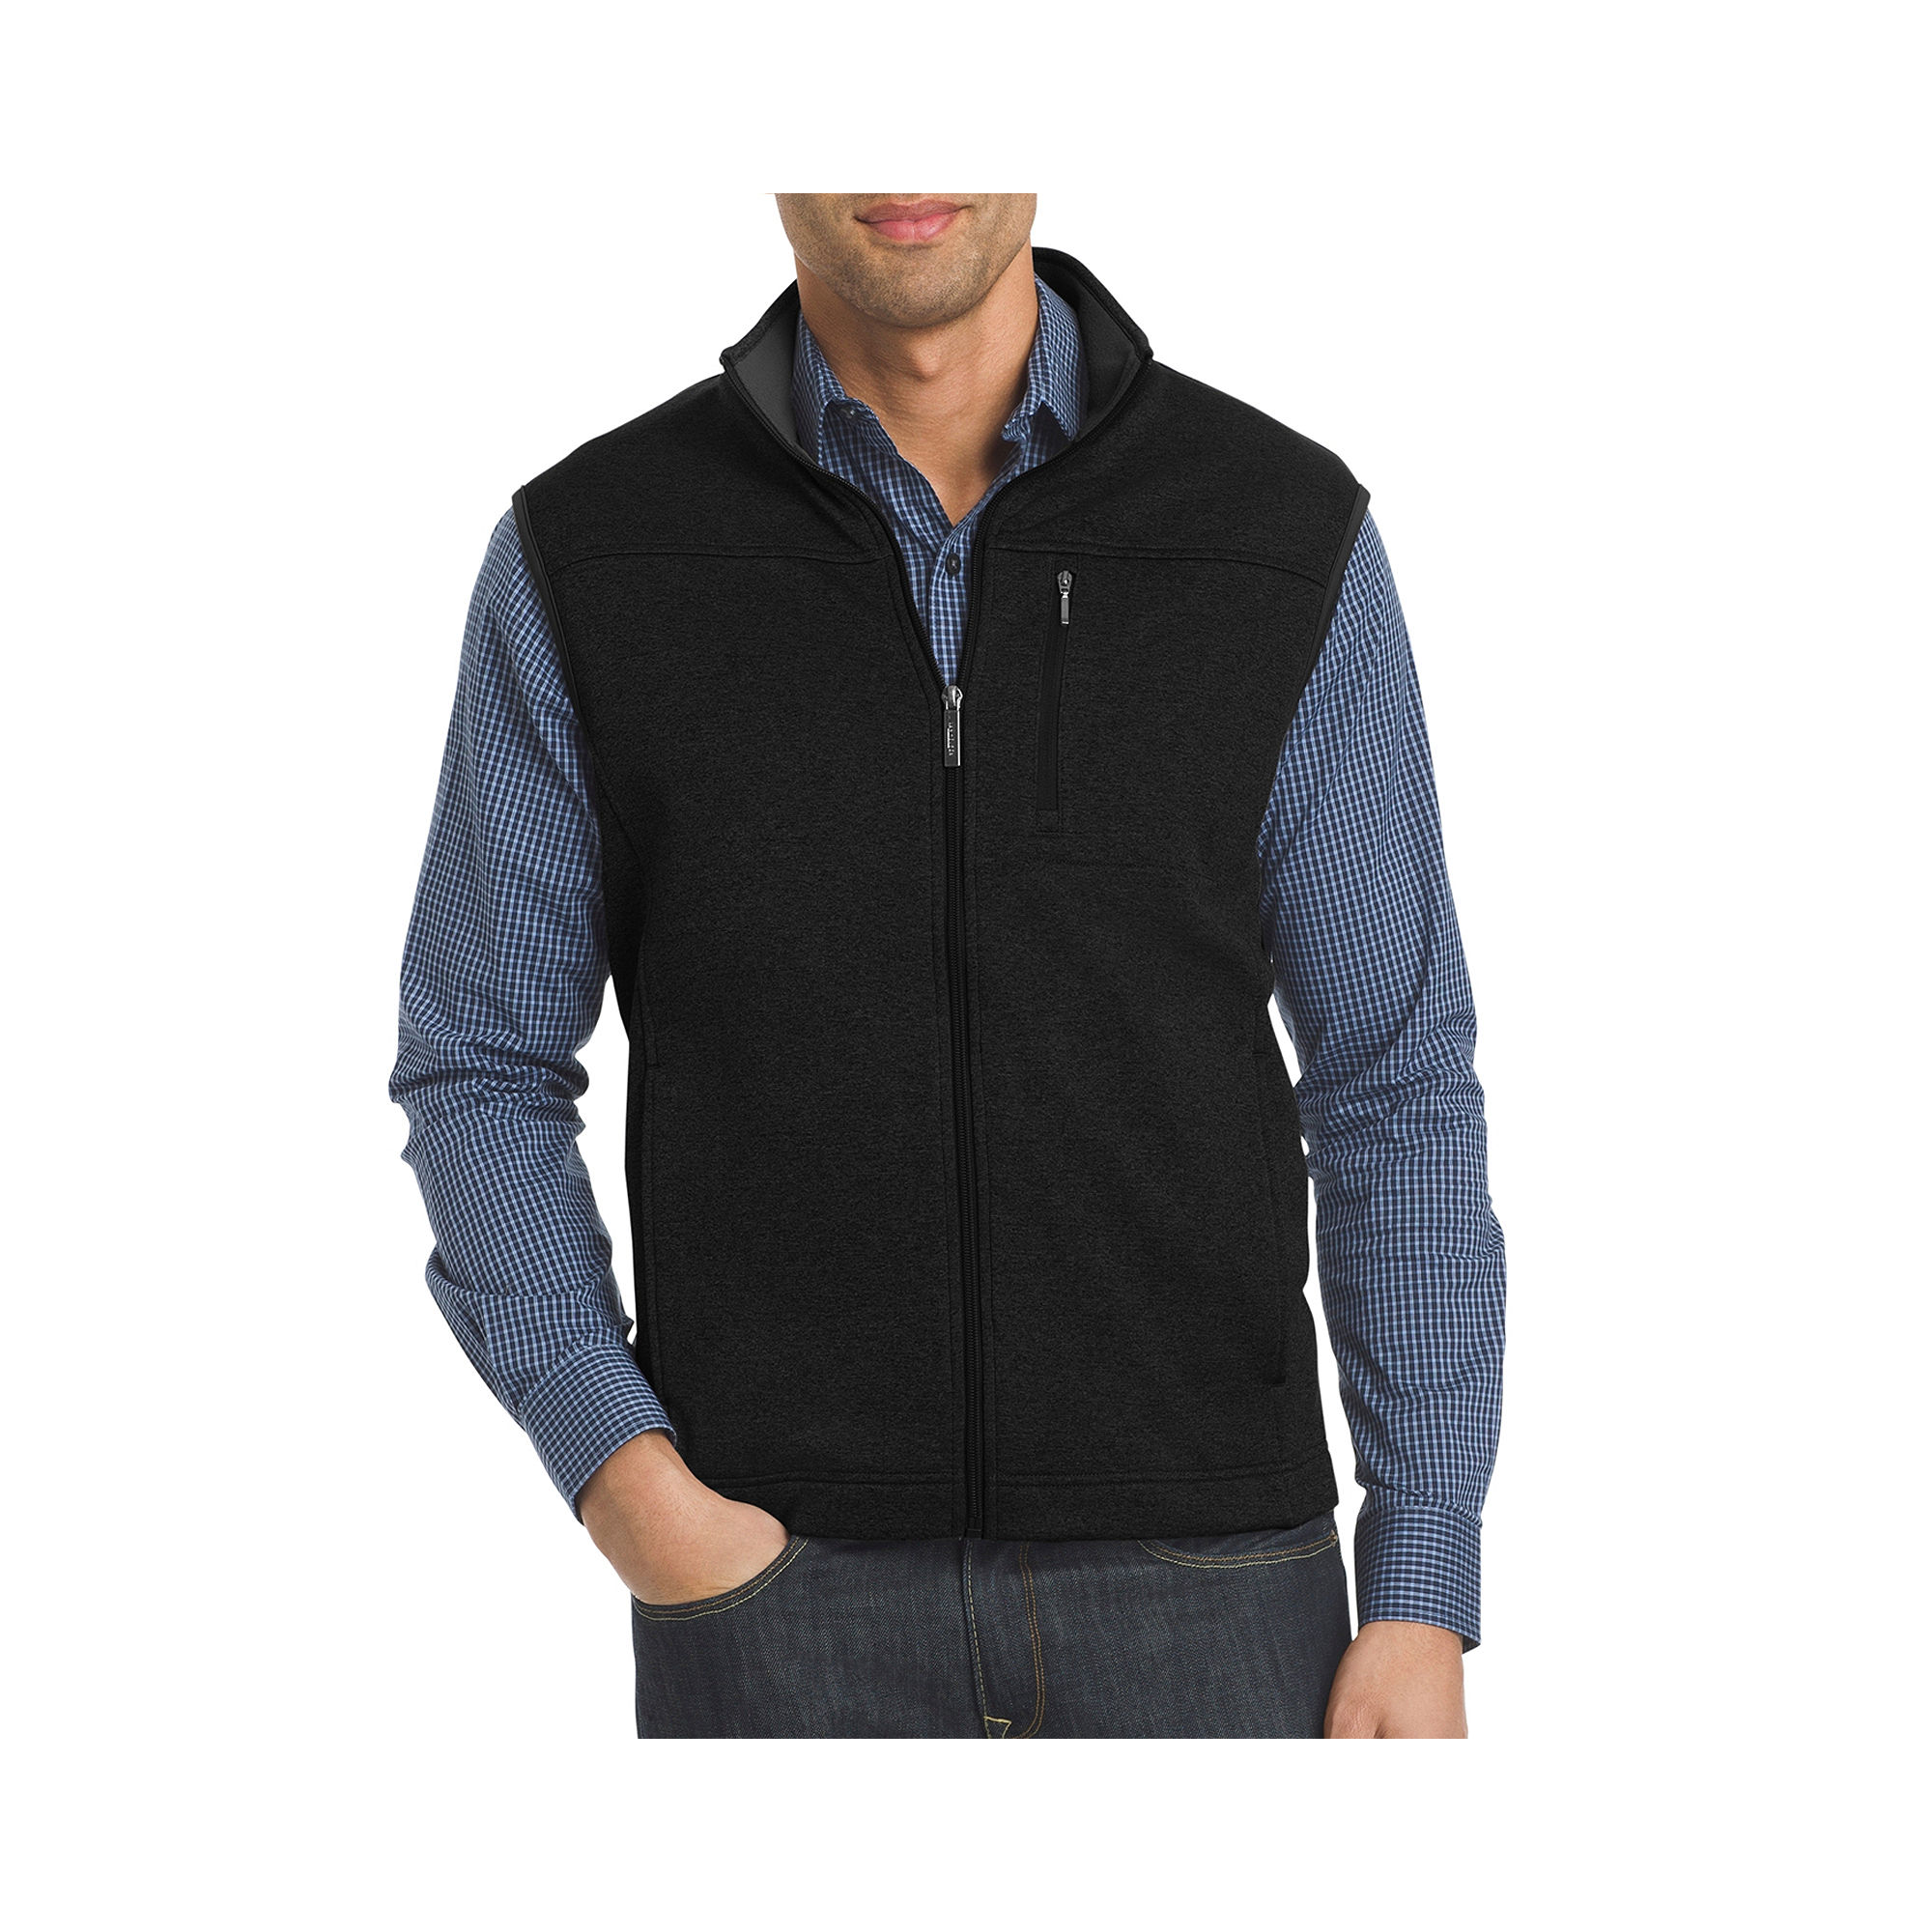 VAN HEUSEN SLEEVELESS FULL-ZIP TRAVELER VEST